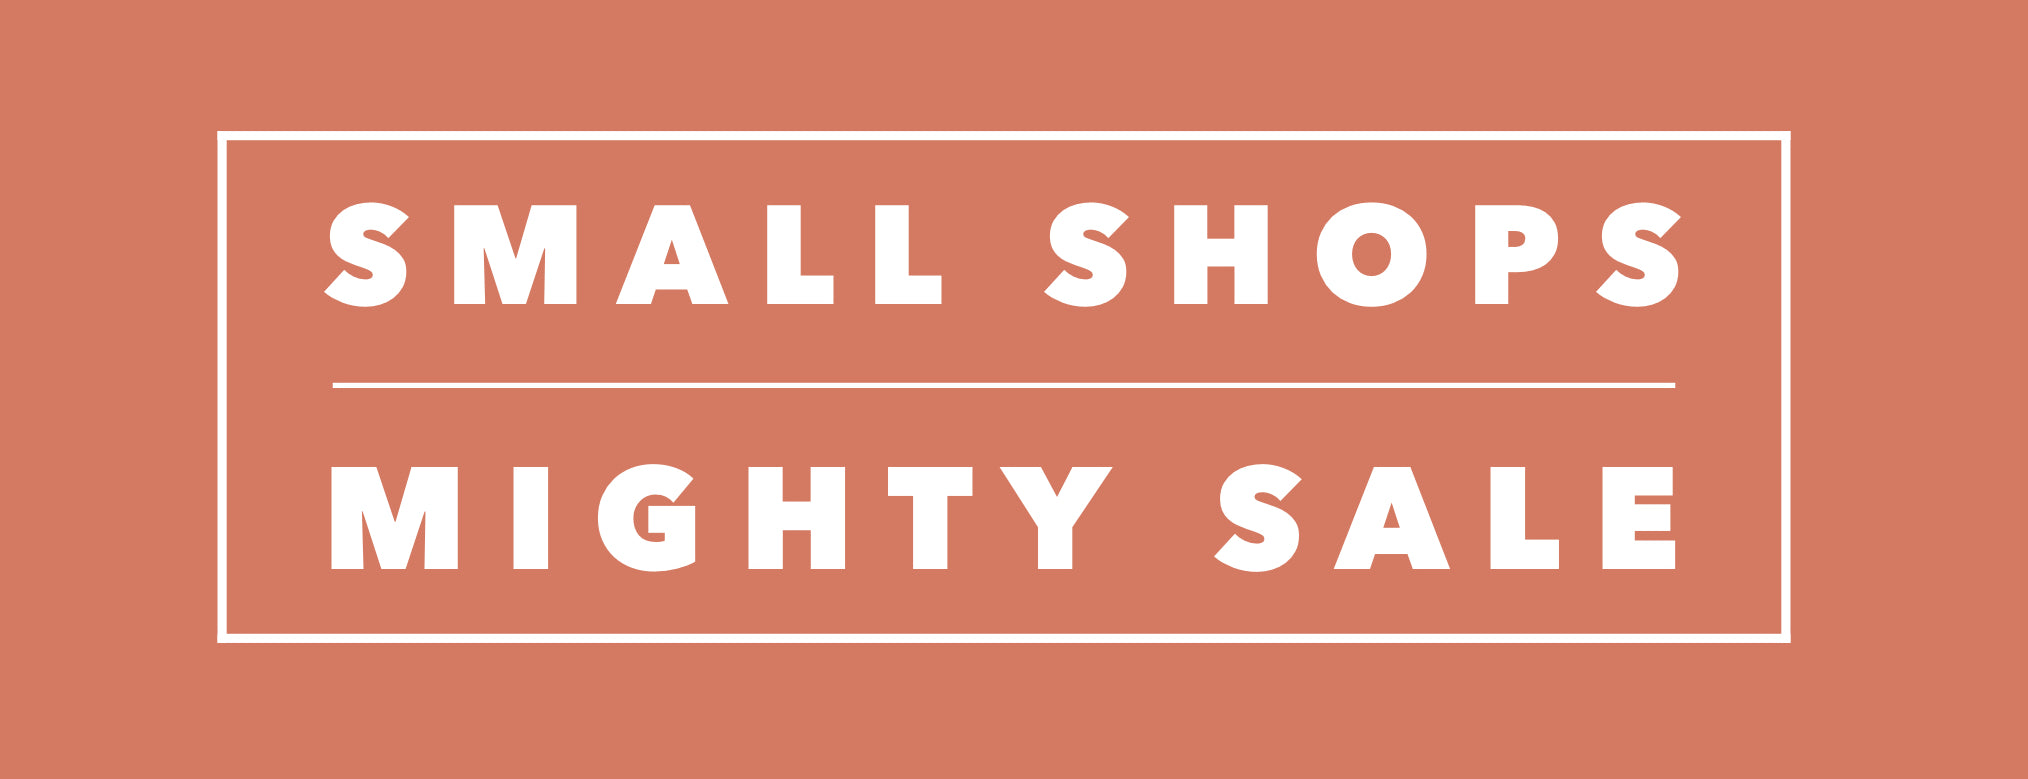 Small Shops Mighty Sale